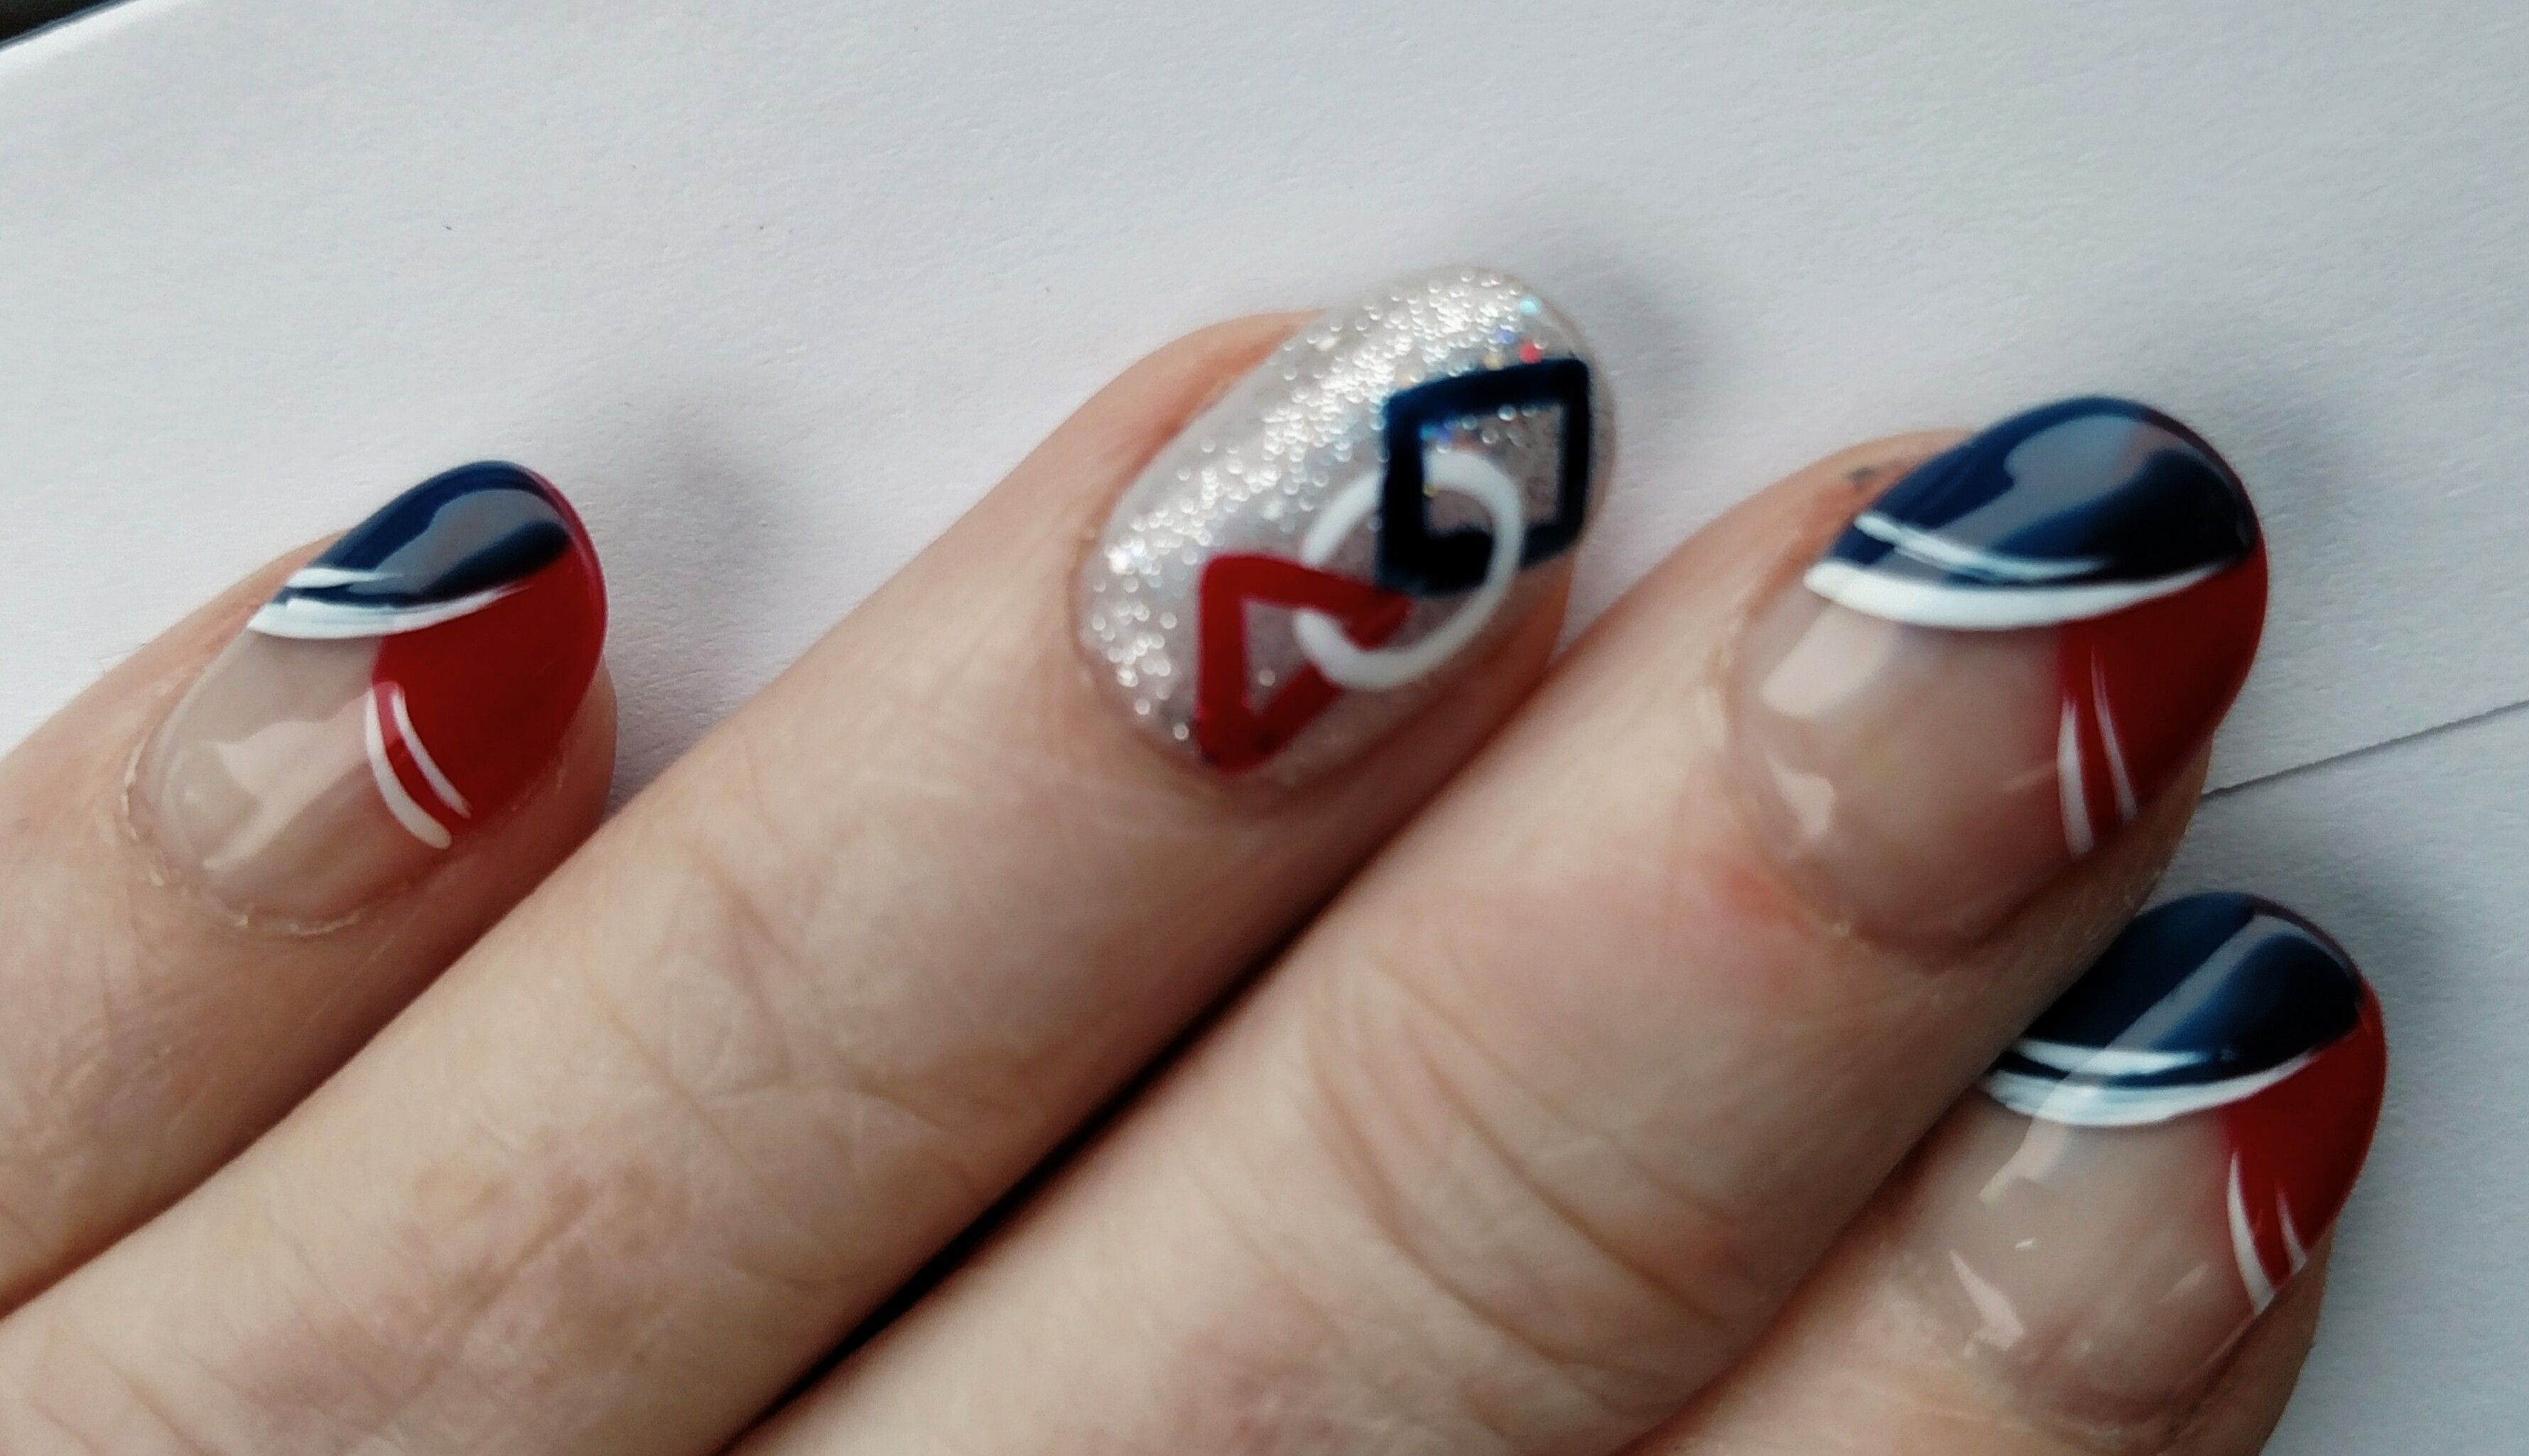 FIRST Robotics nails: Red, White and Blue. FRC, FTC, FLL, FLL Jr ...